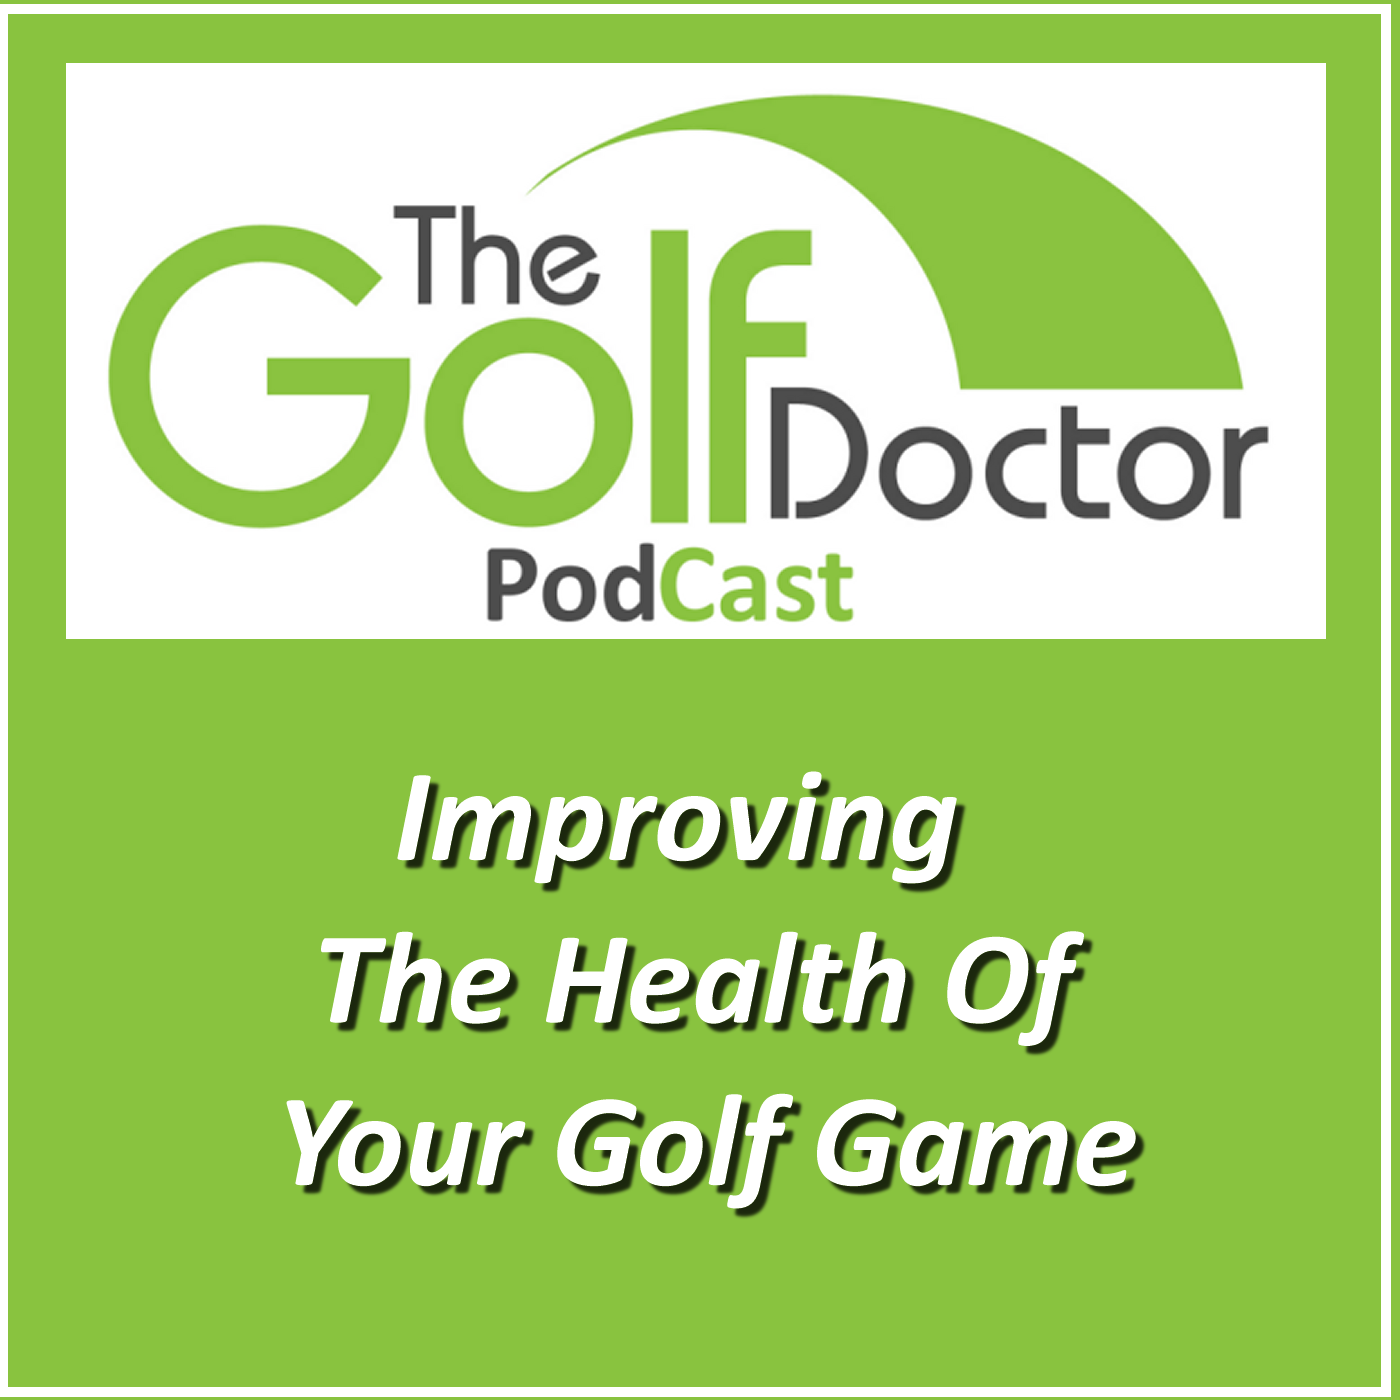 The Golf Doctor Podcast